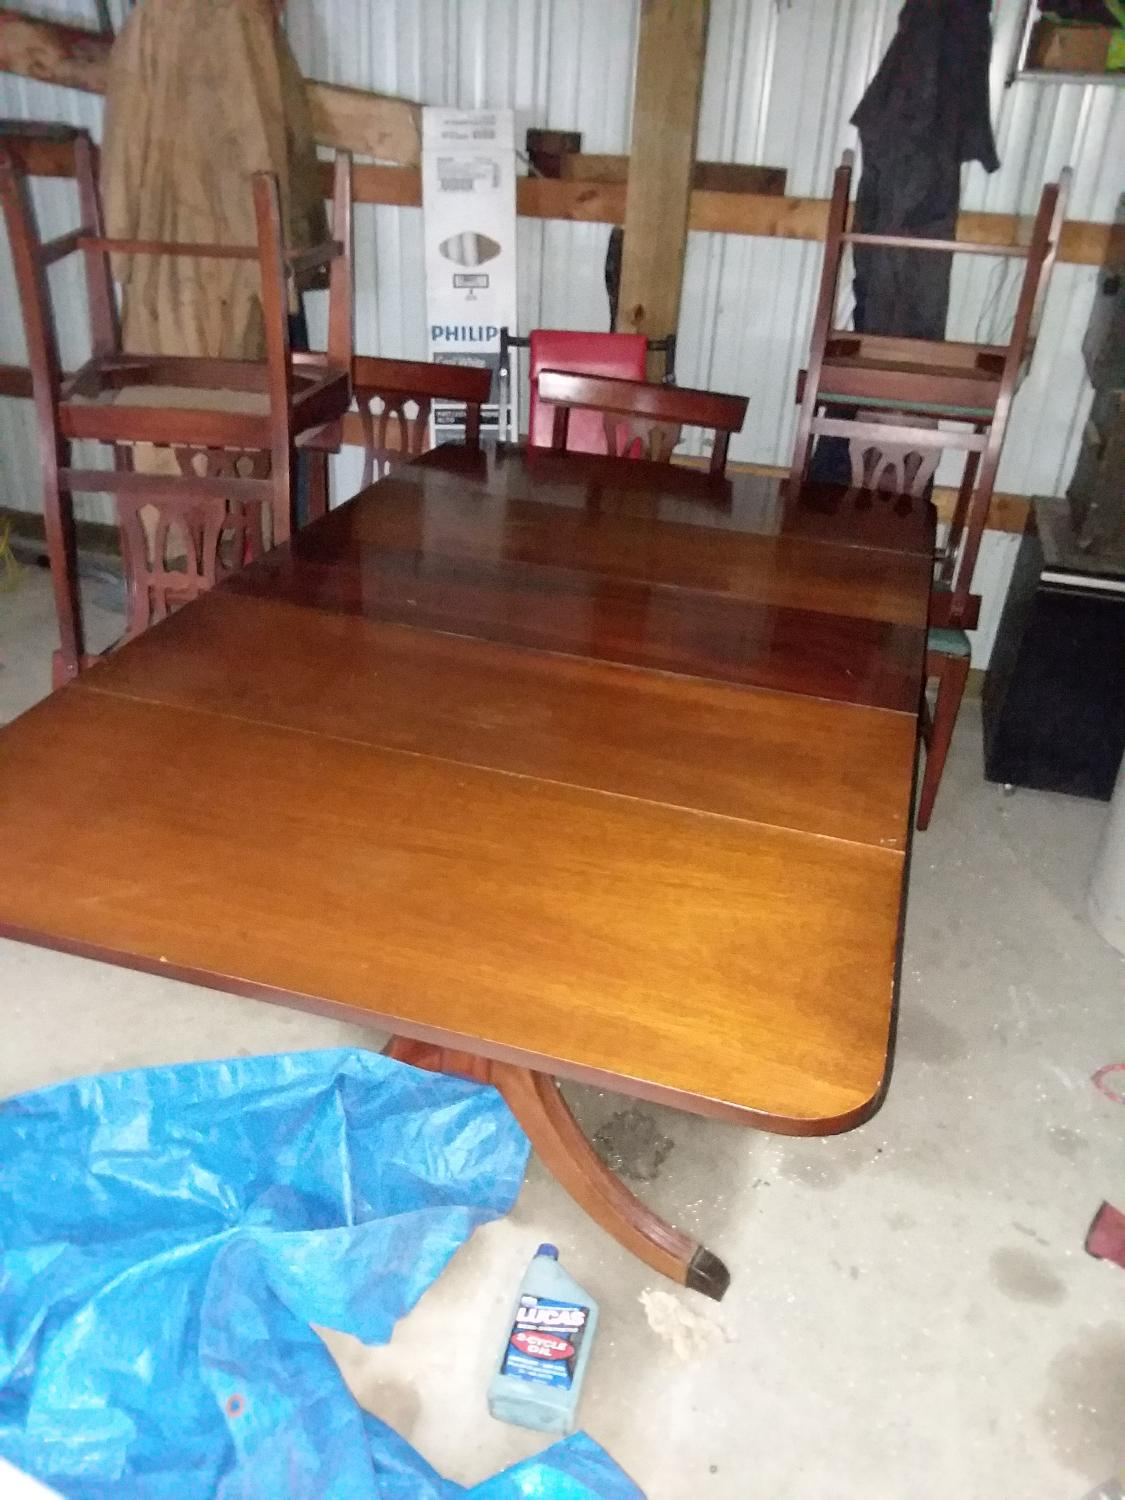 Find More Duncan Phyfe Drop Leaf Table And 6 Chairs For Sale At Up To 90 Off